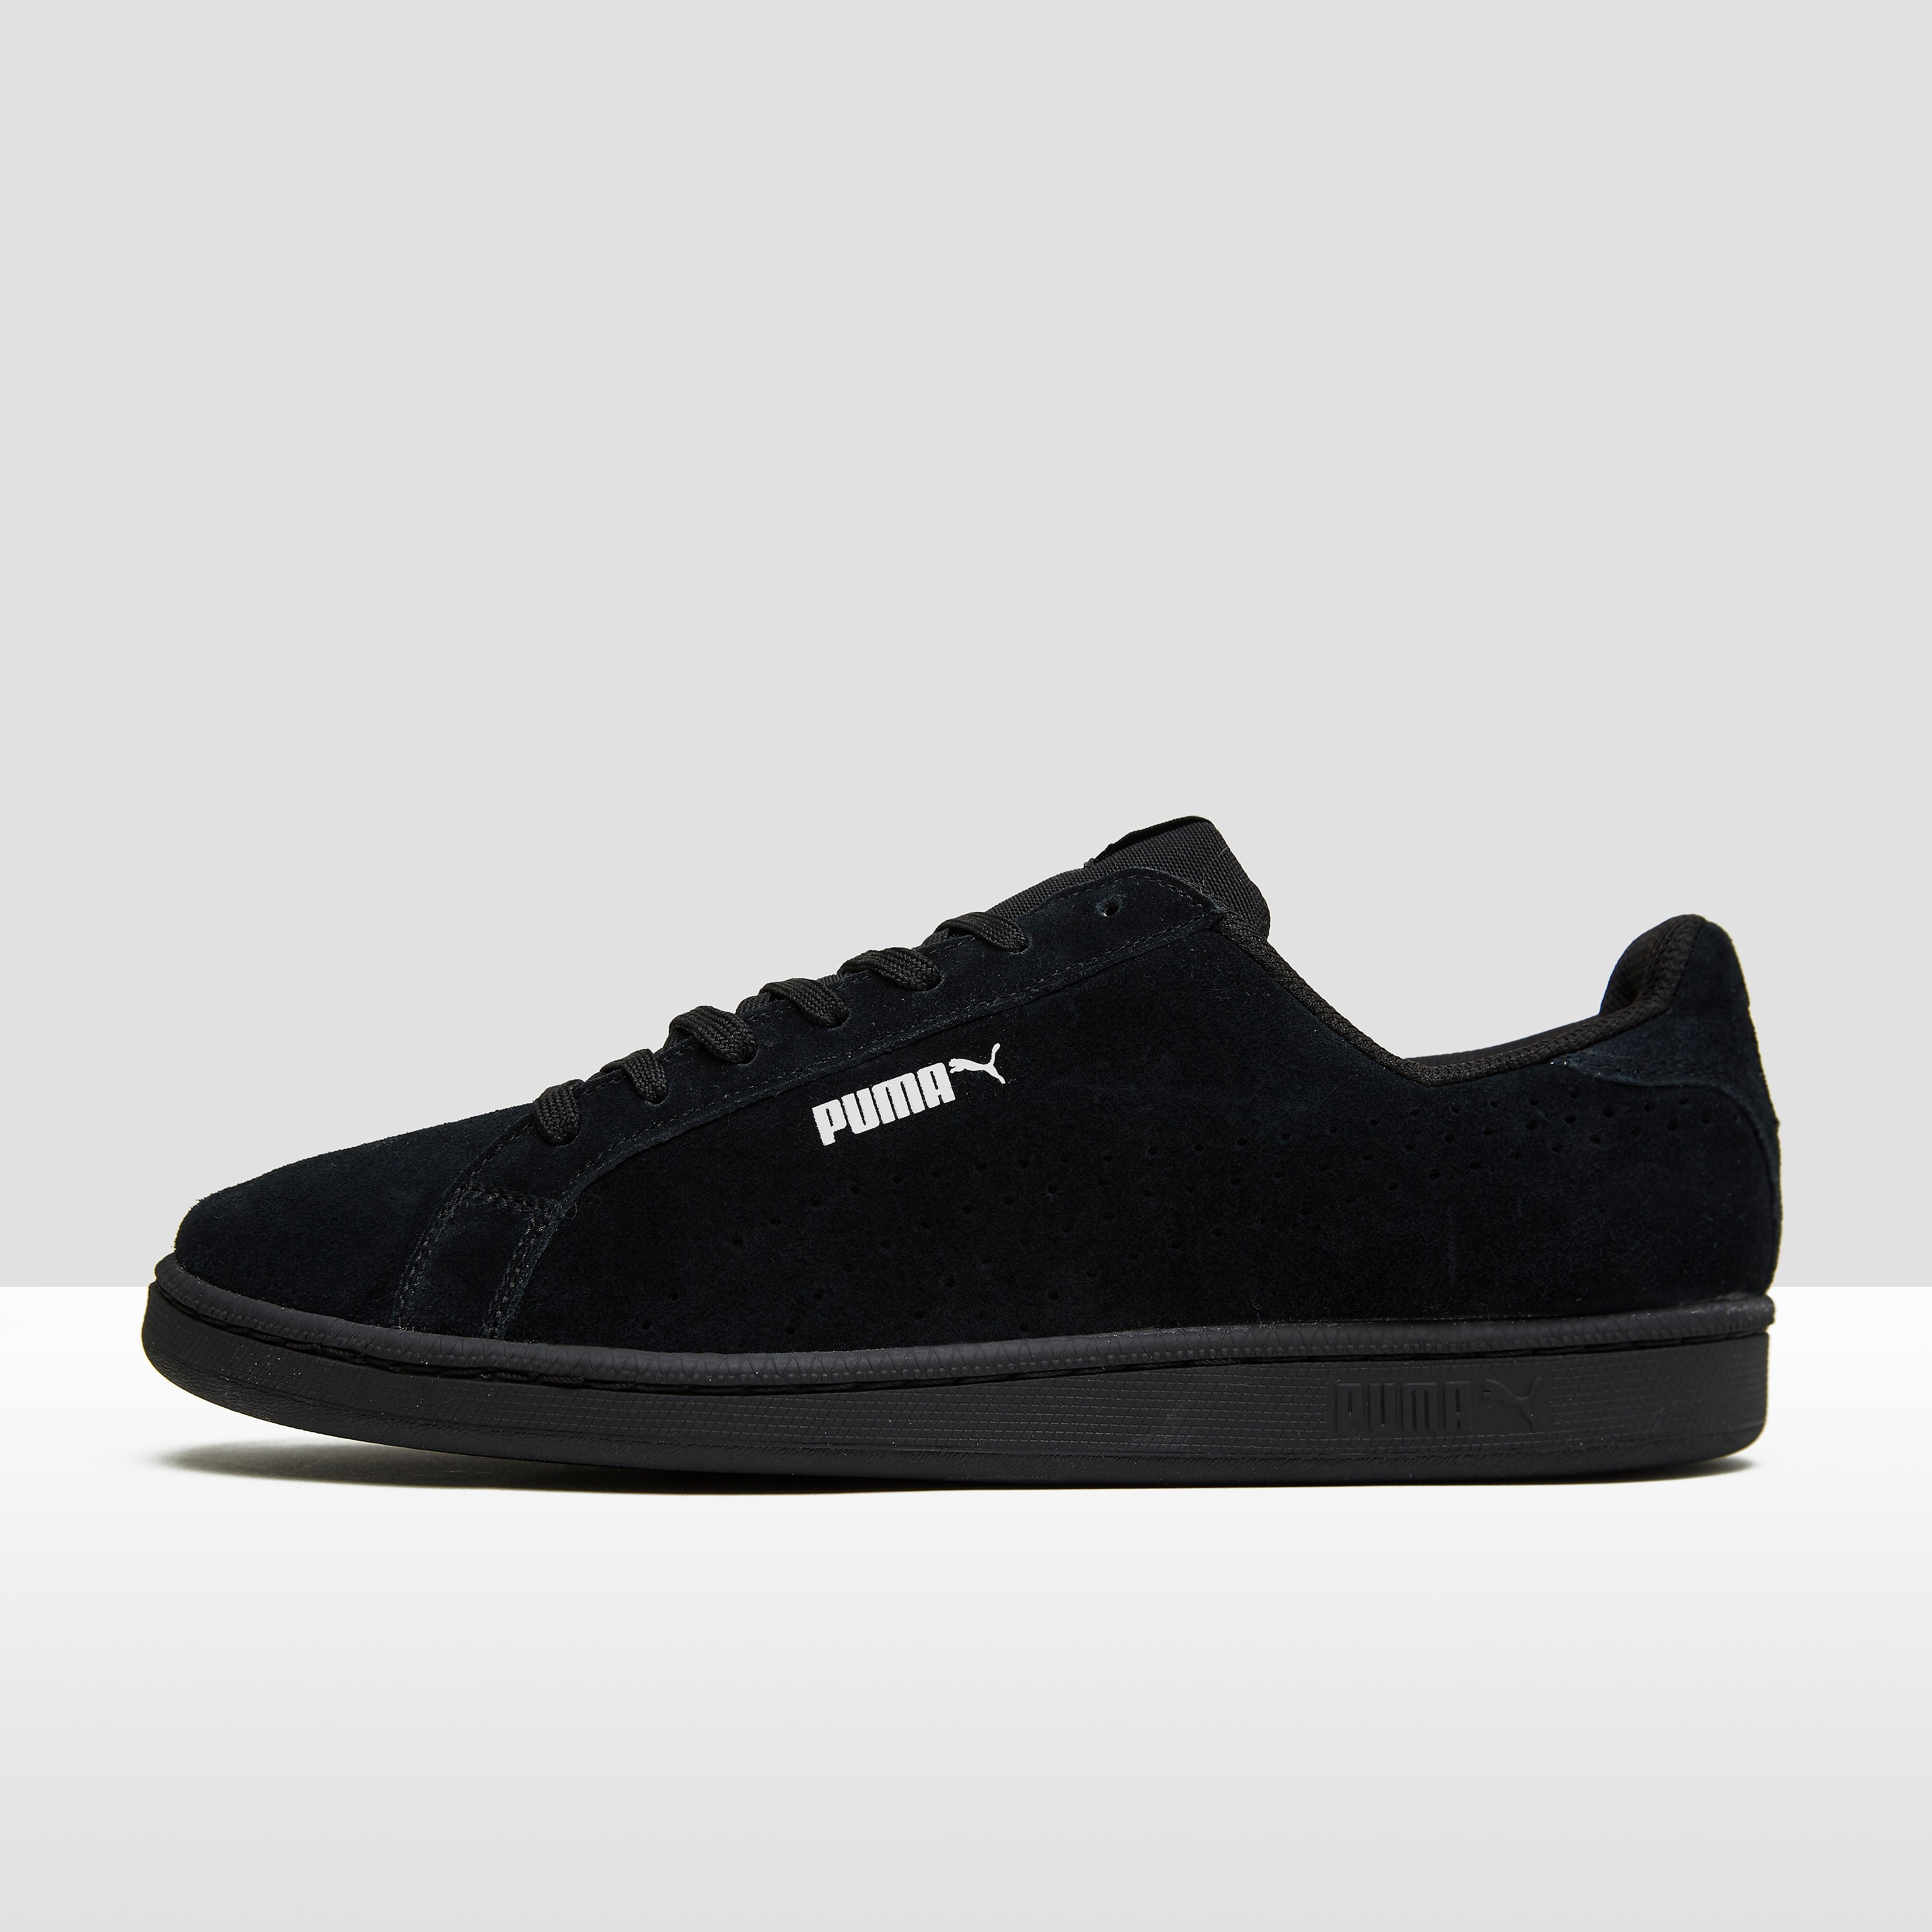 PUMA SMASH PERFORMANCE SUÈDE SNEAKERS ZWART HEREN